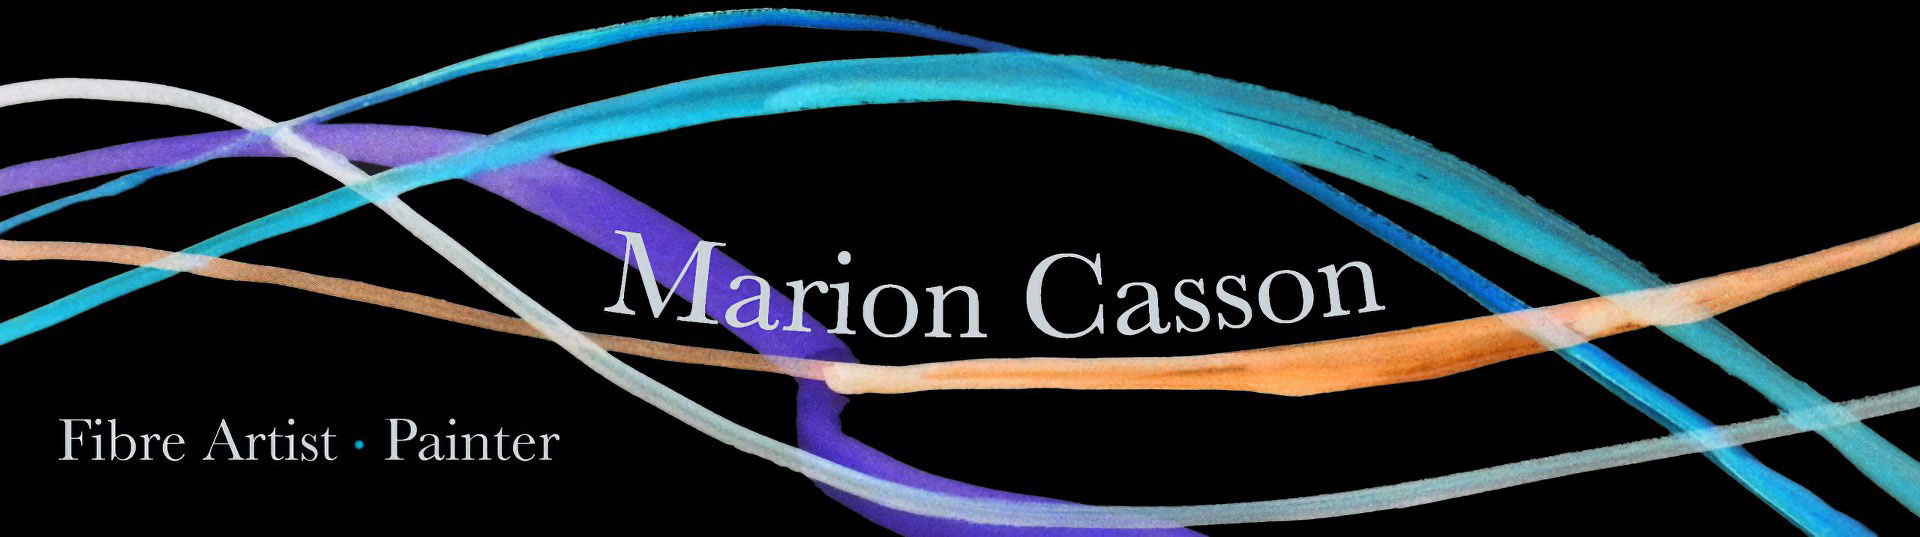 Marion Casson - Fibre Artist - Painter